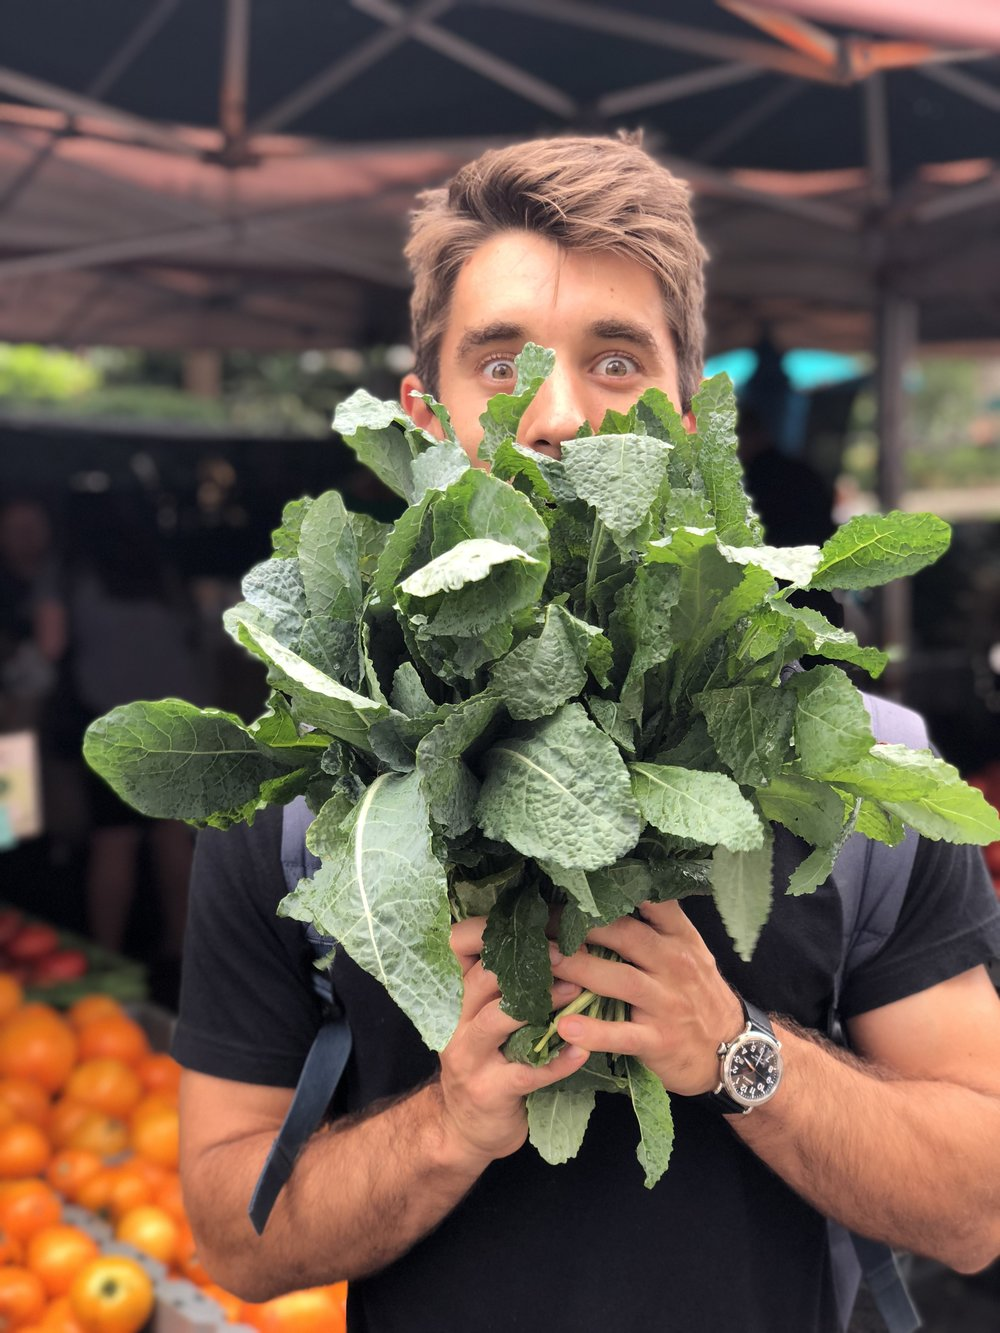 Coming soon… - more veggies please